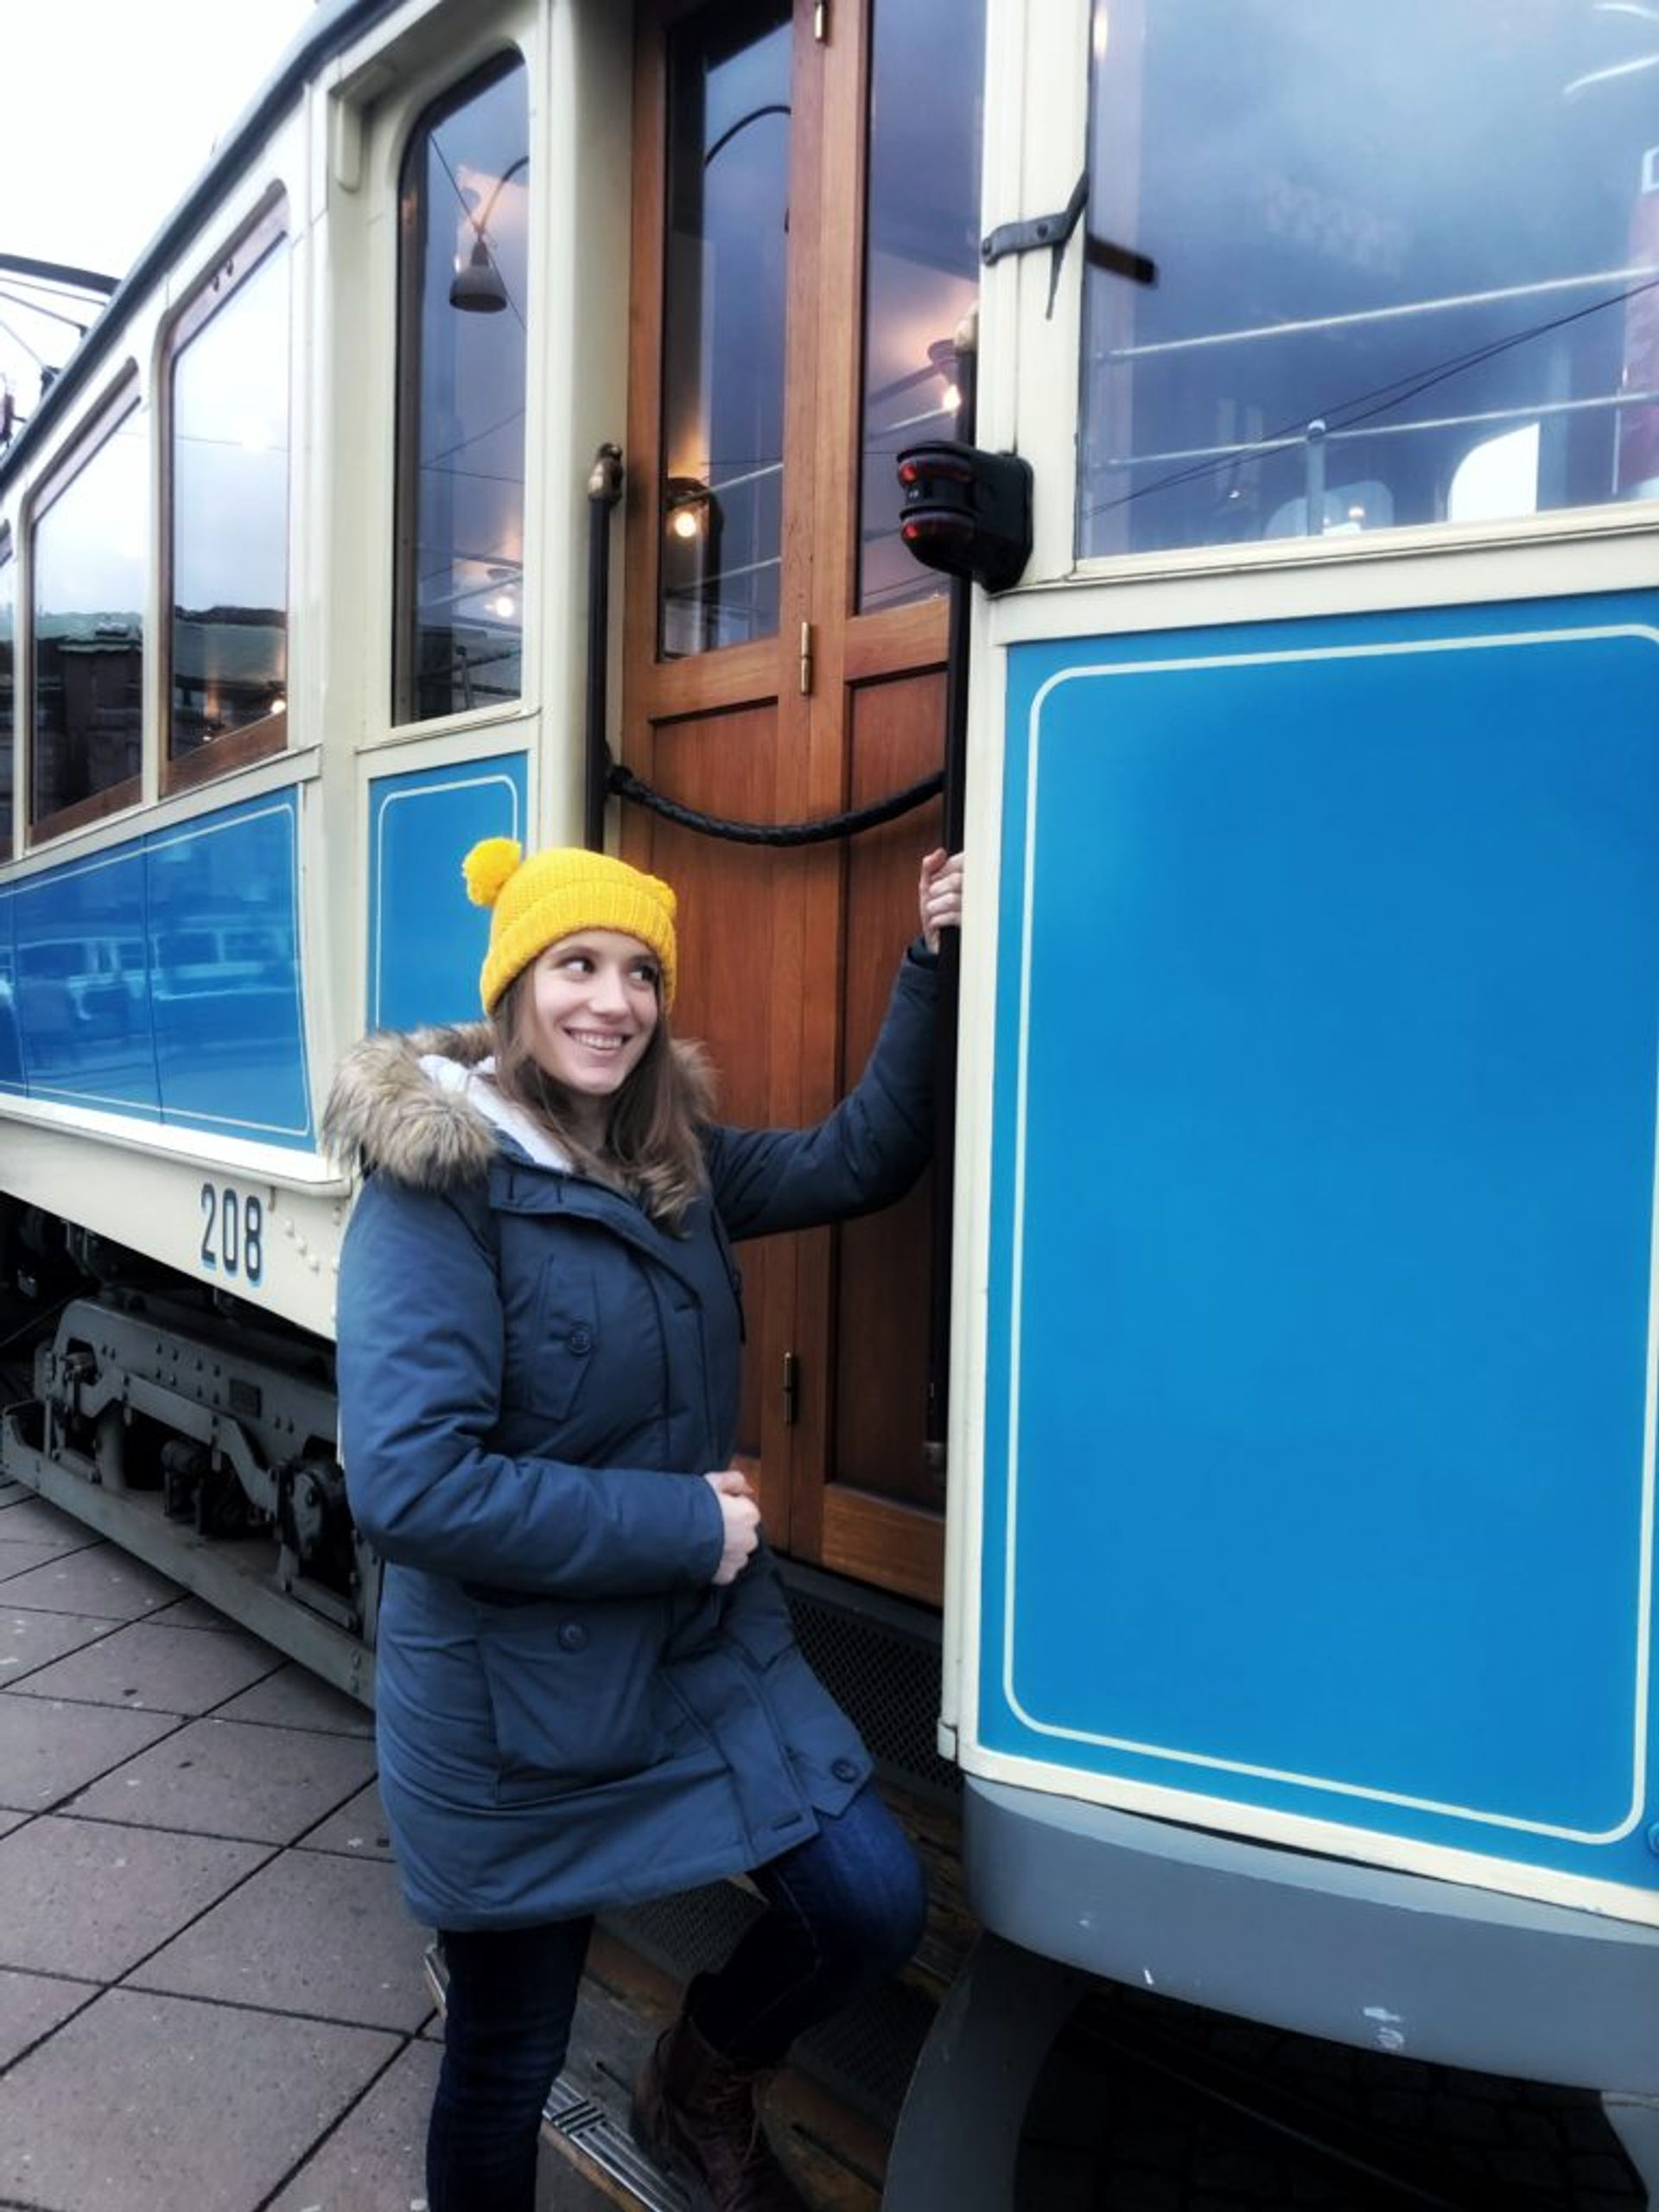 A person standing beside a blue tram.